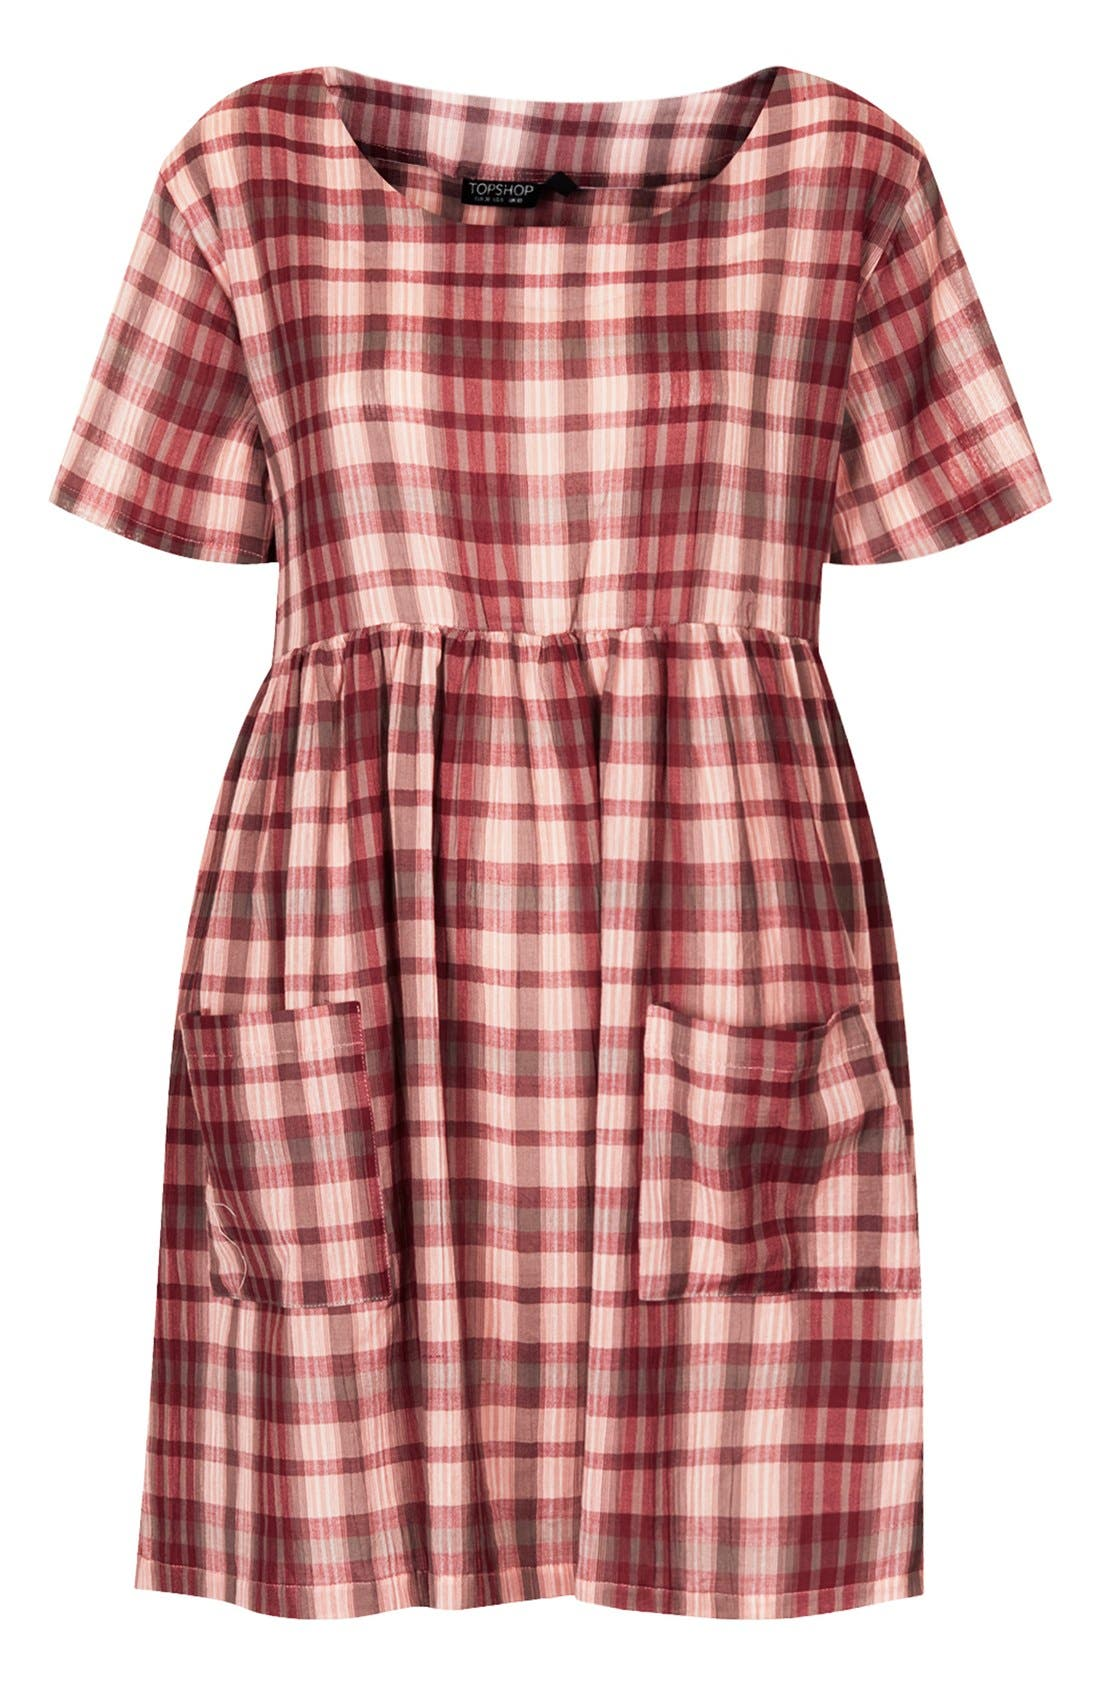 Alternate Image 3  - Topshop Plaid Cotton Smock Dress